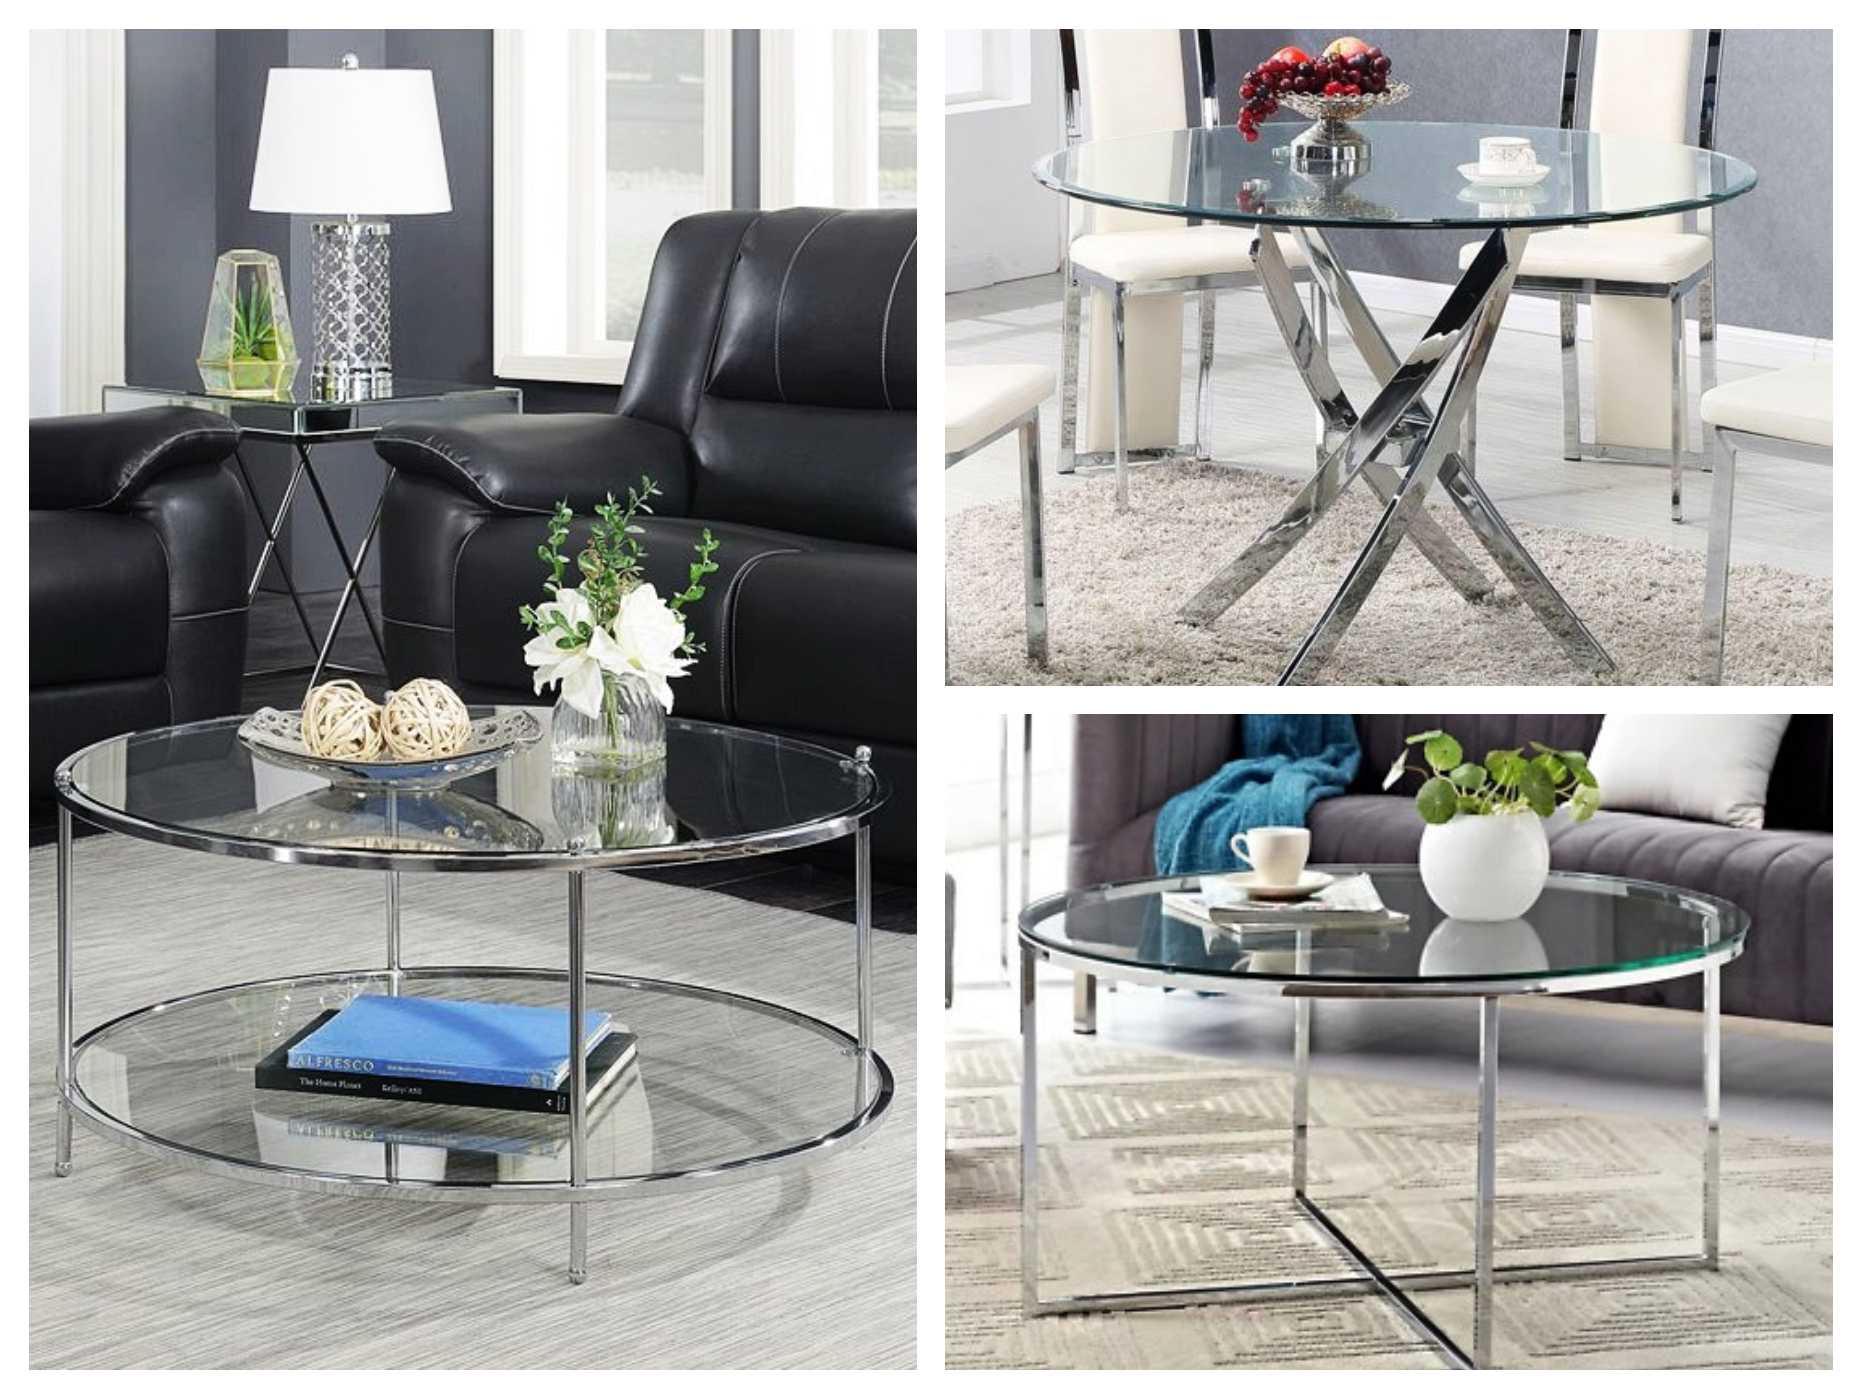 Meja stainless steel mewah top table kaca